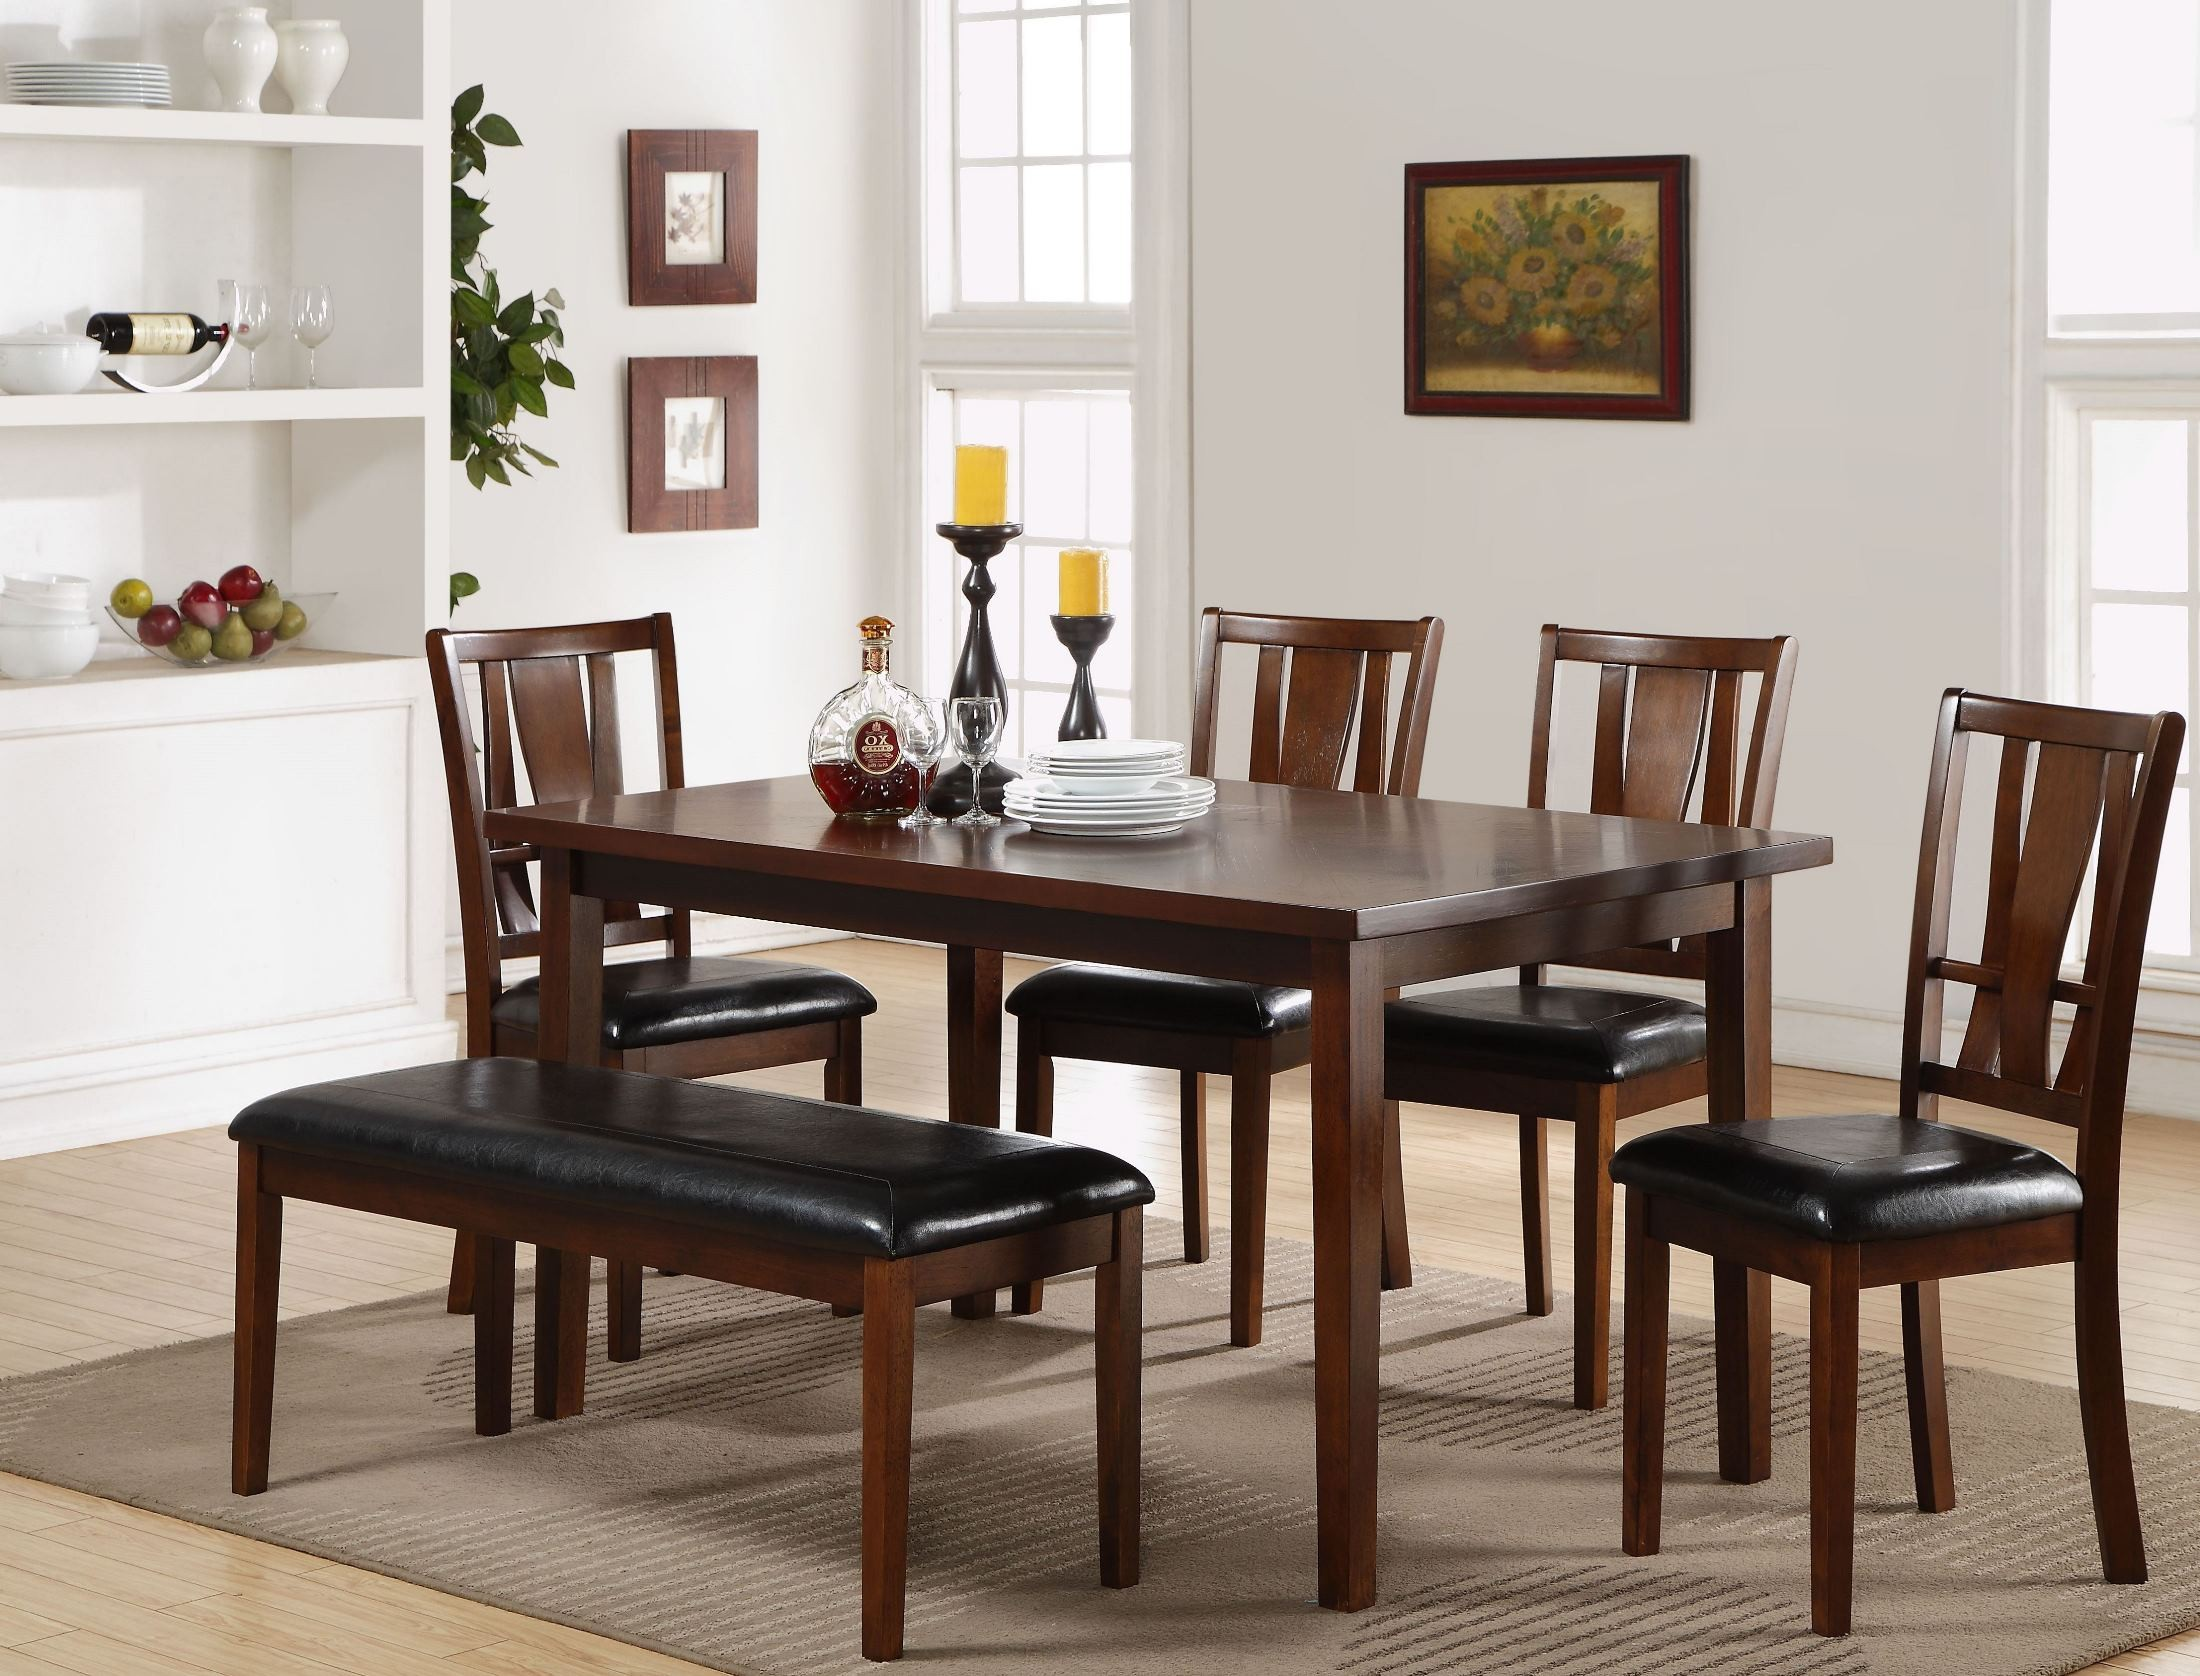 6 pcs dixon dark espresso dining room set from new classic for Dining room sets 6 piece